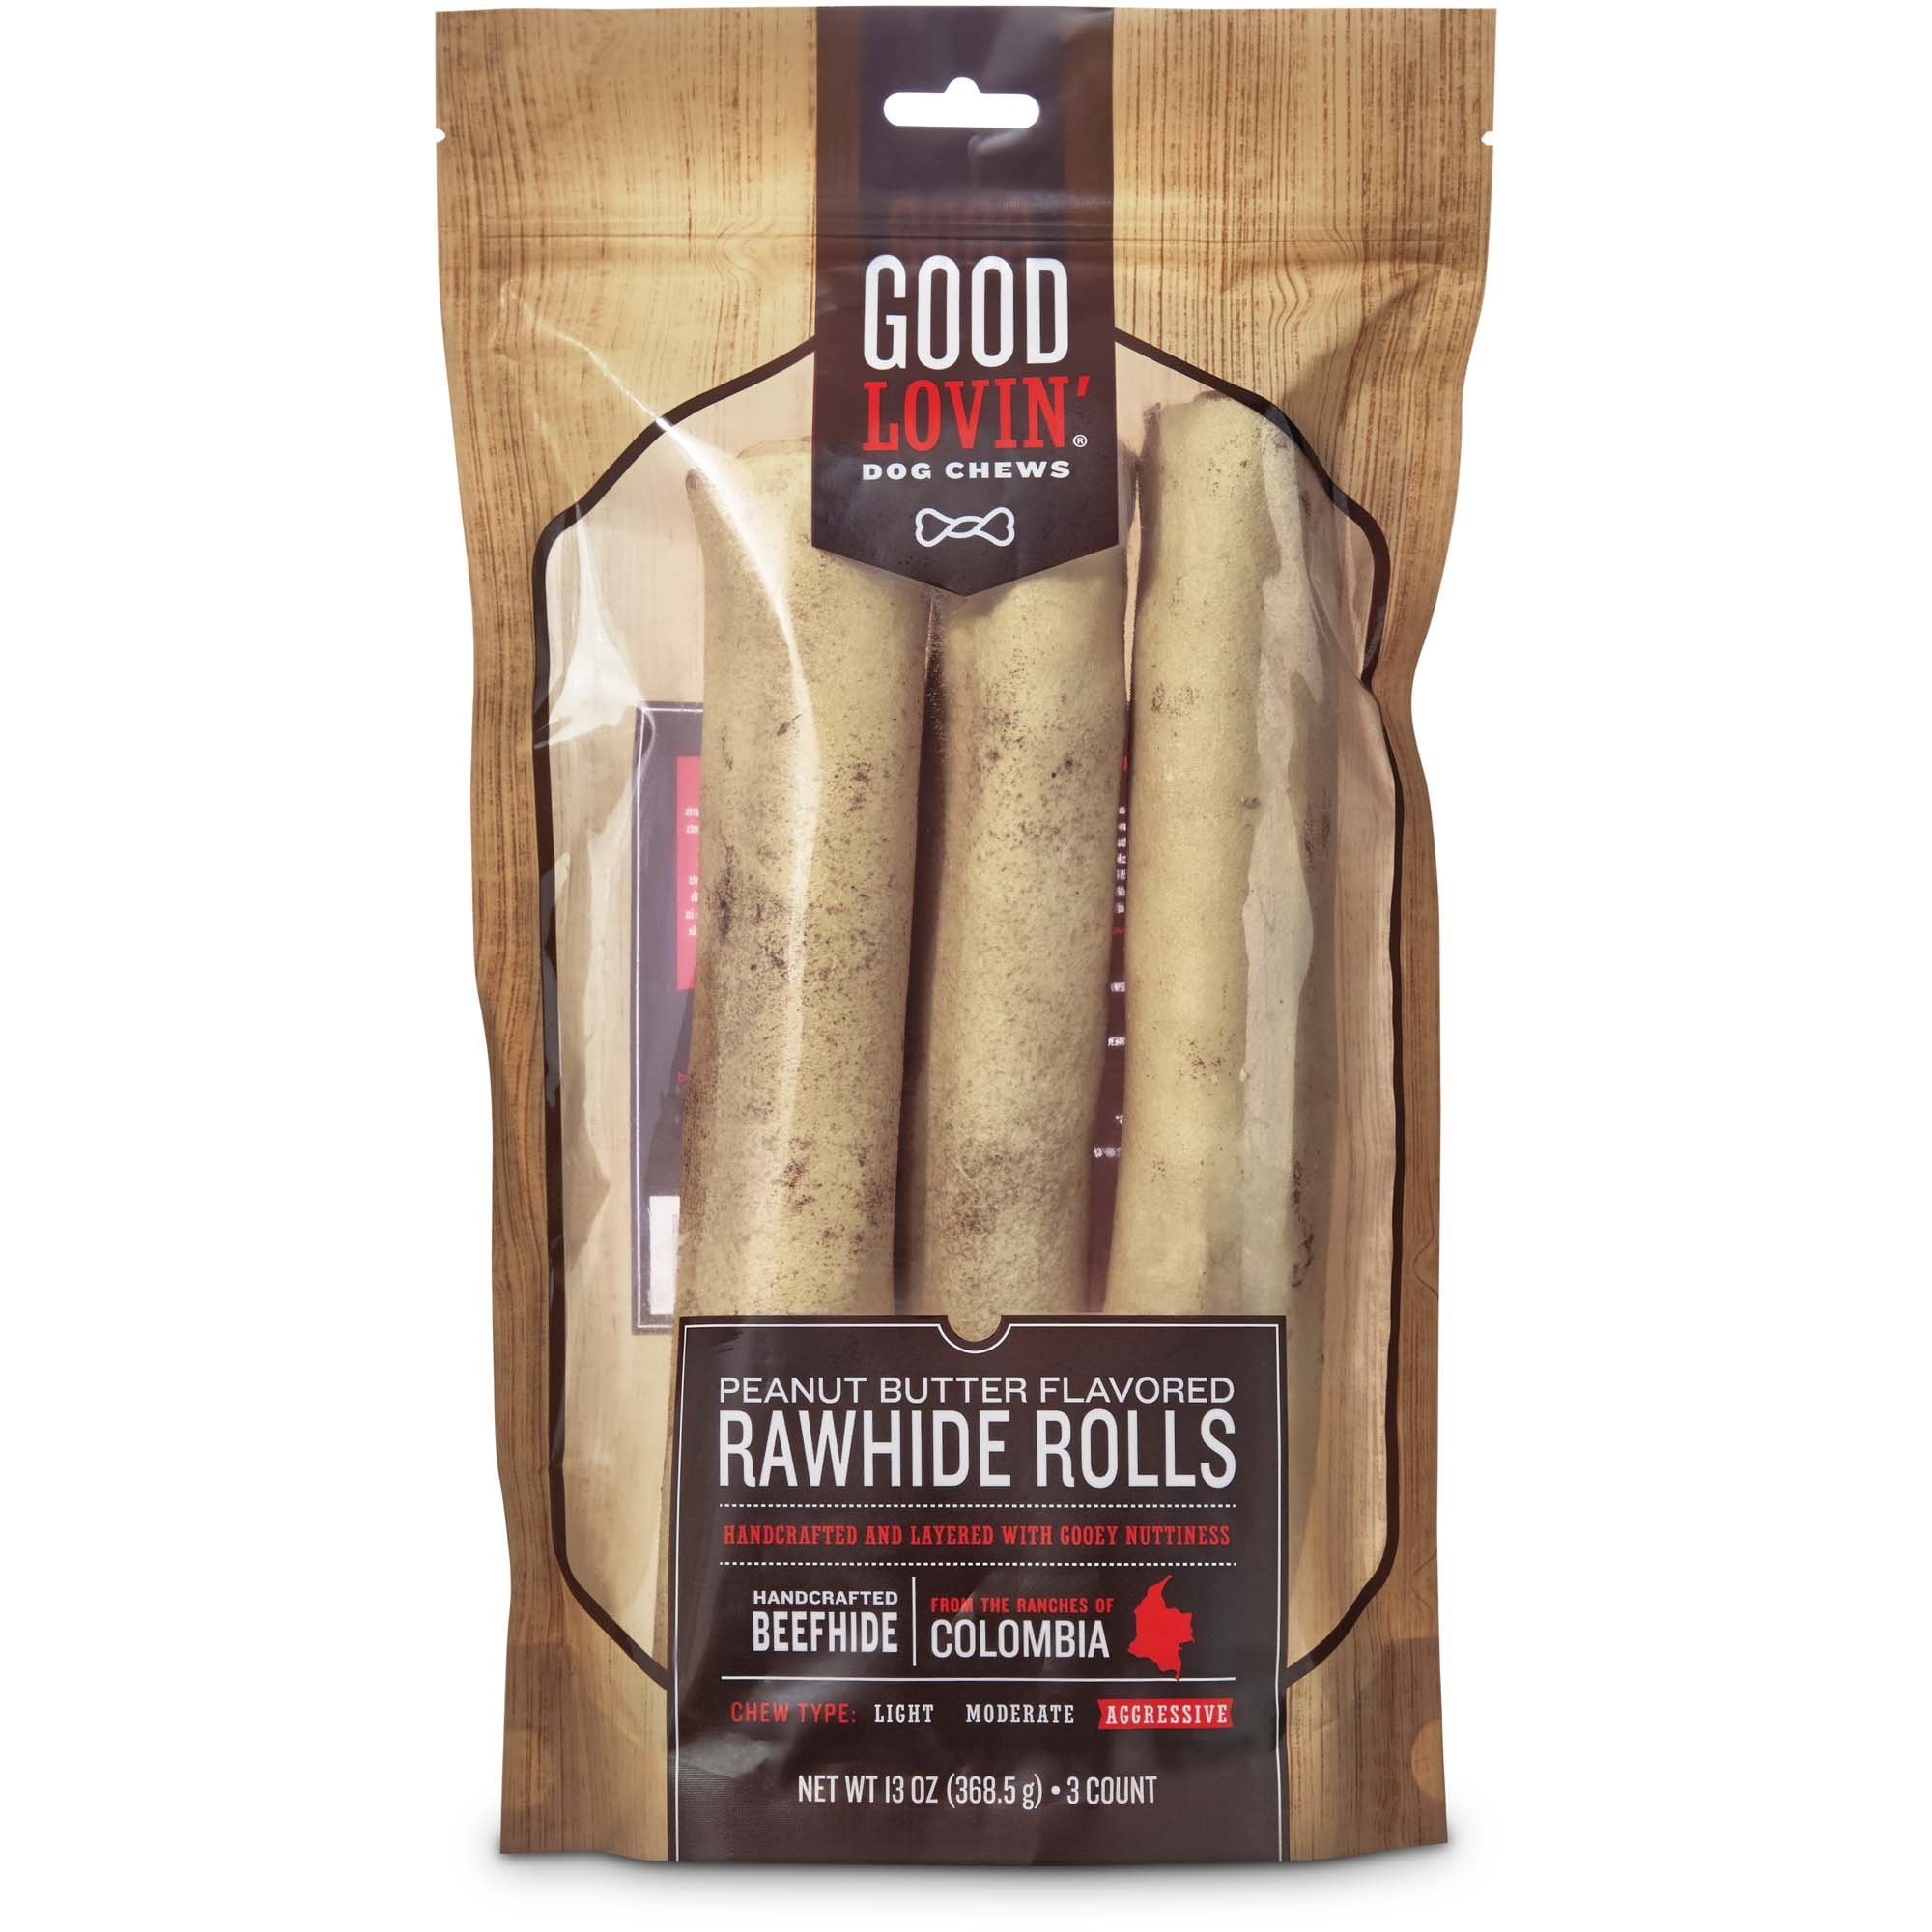 Good Lovin' Peanut Butter Flavored Rawhide Roll Dog Chews, 10-inch, Pack of 3, 13 OZ